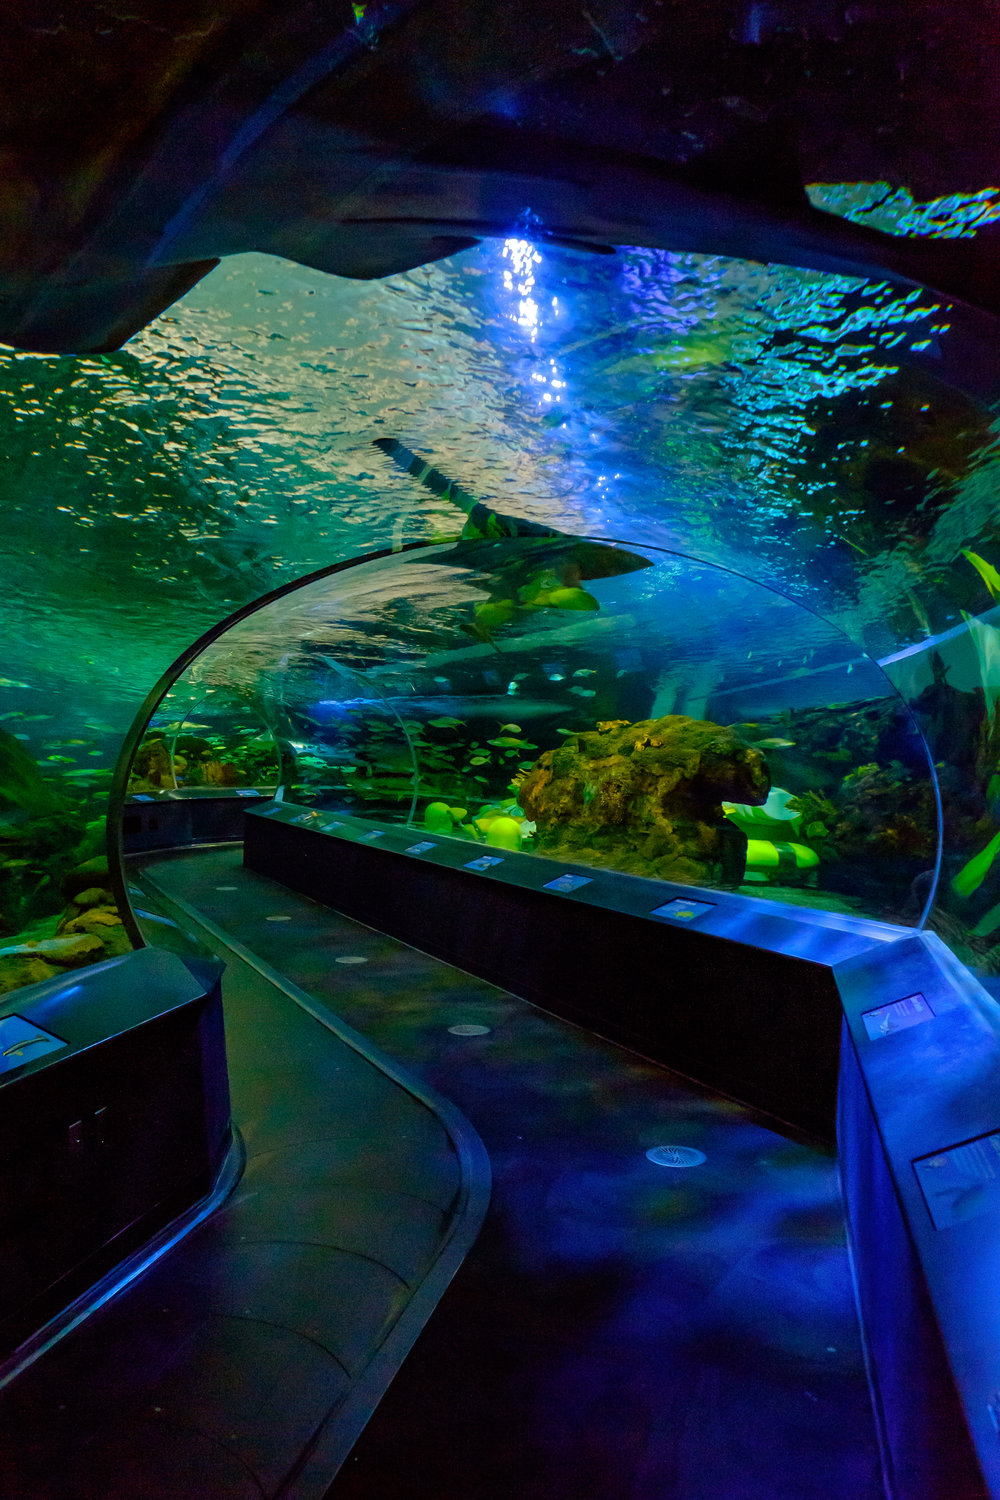 Ripley's Aquarium of Toronto